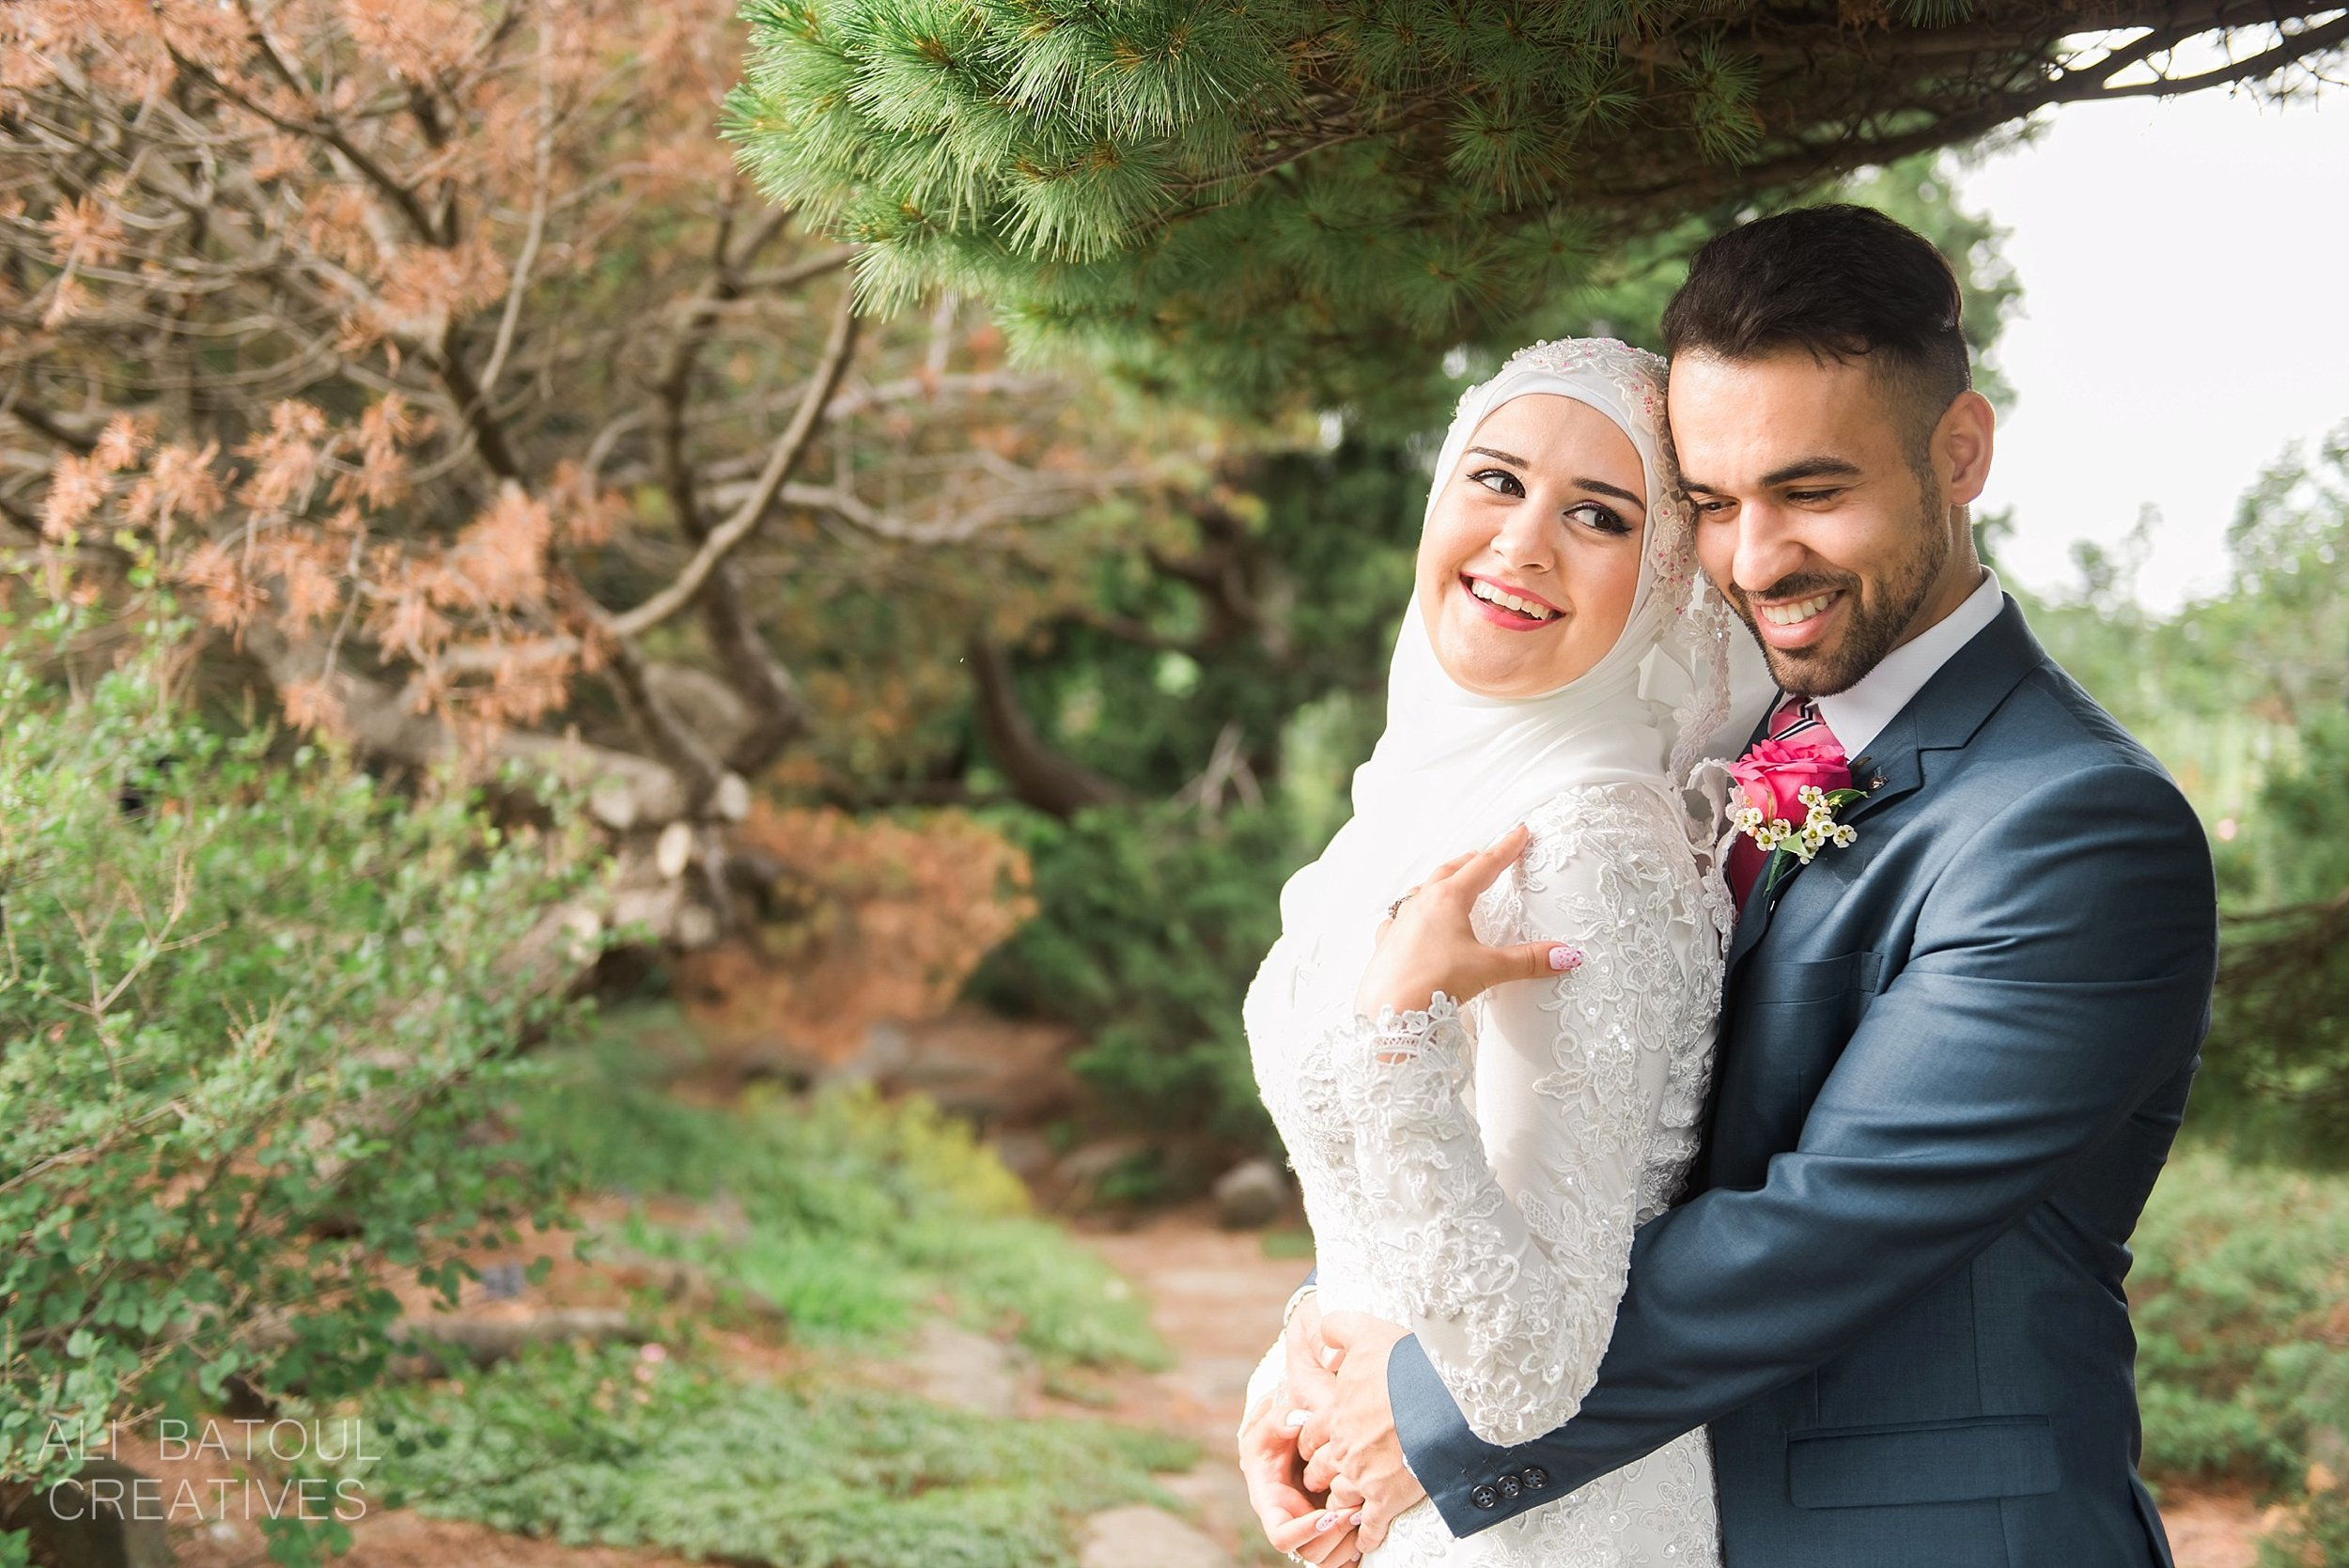 Hanan + Said - Ali Batoul Creatives Fine Art Wedding Photography_0286.jpg